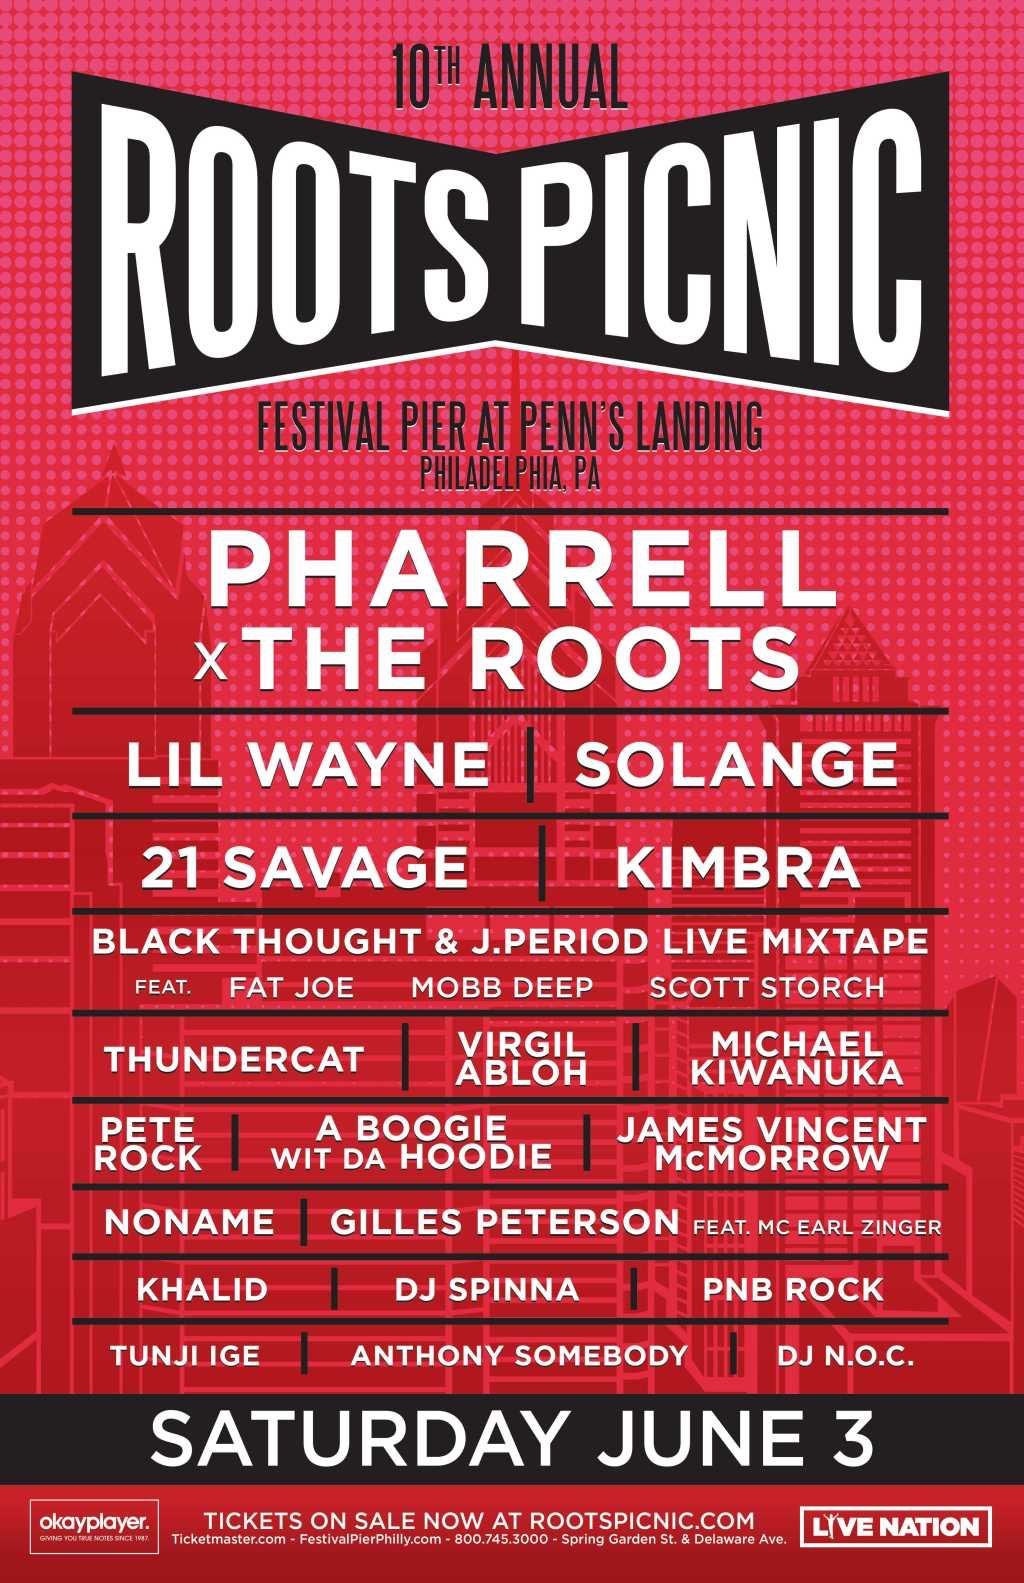 Roots Picnic Announced: Solange, Lil Wayne, Pharrell, & More